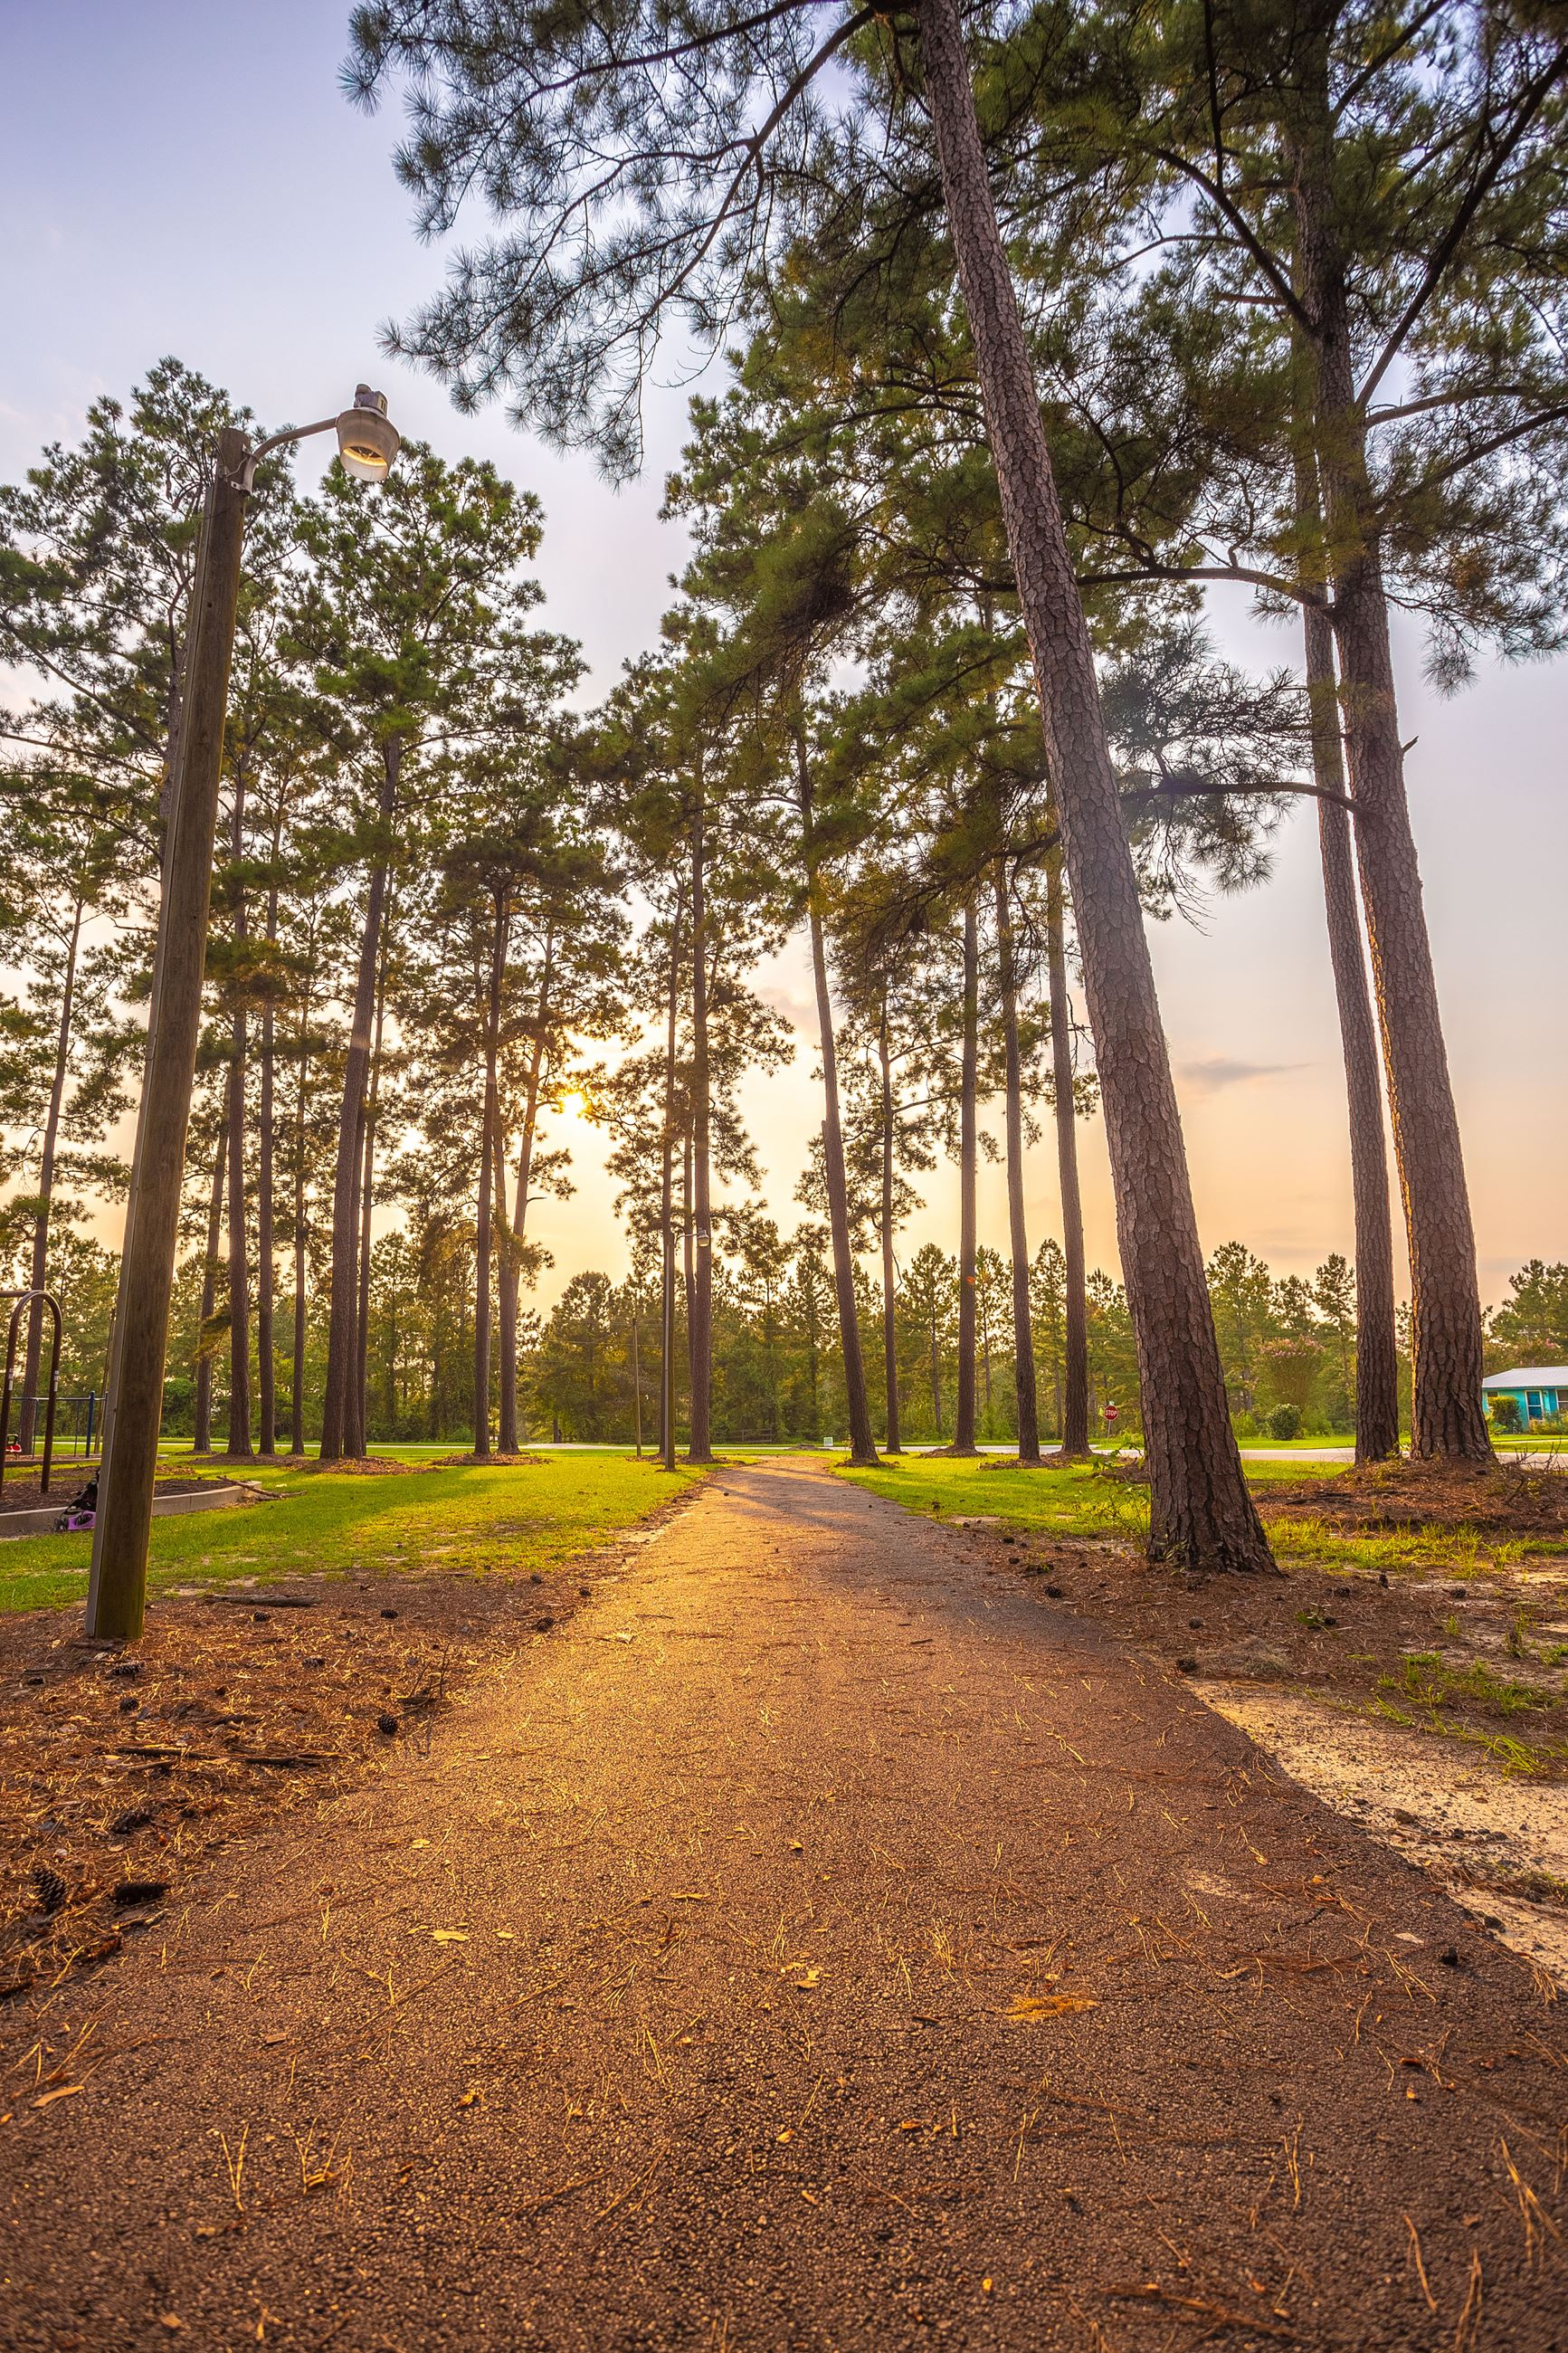 An image of a tree-lined paved walking trail through a park with the sun setting.